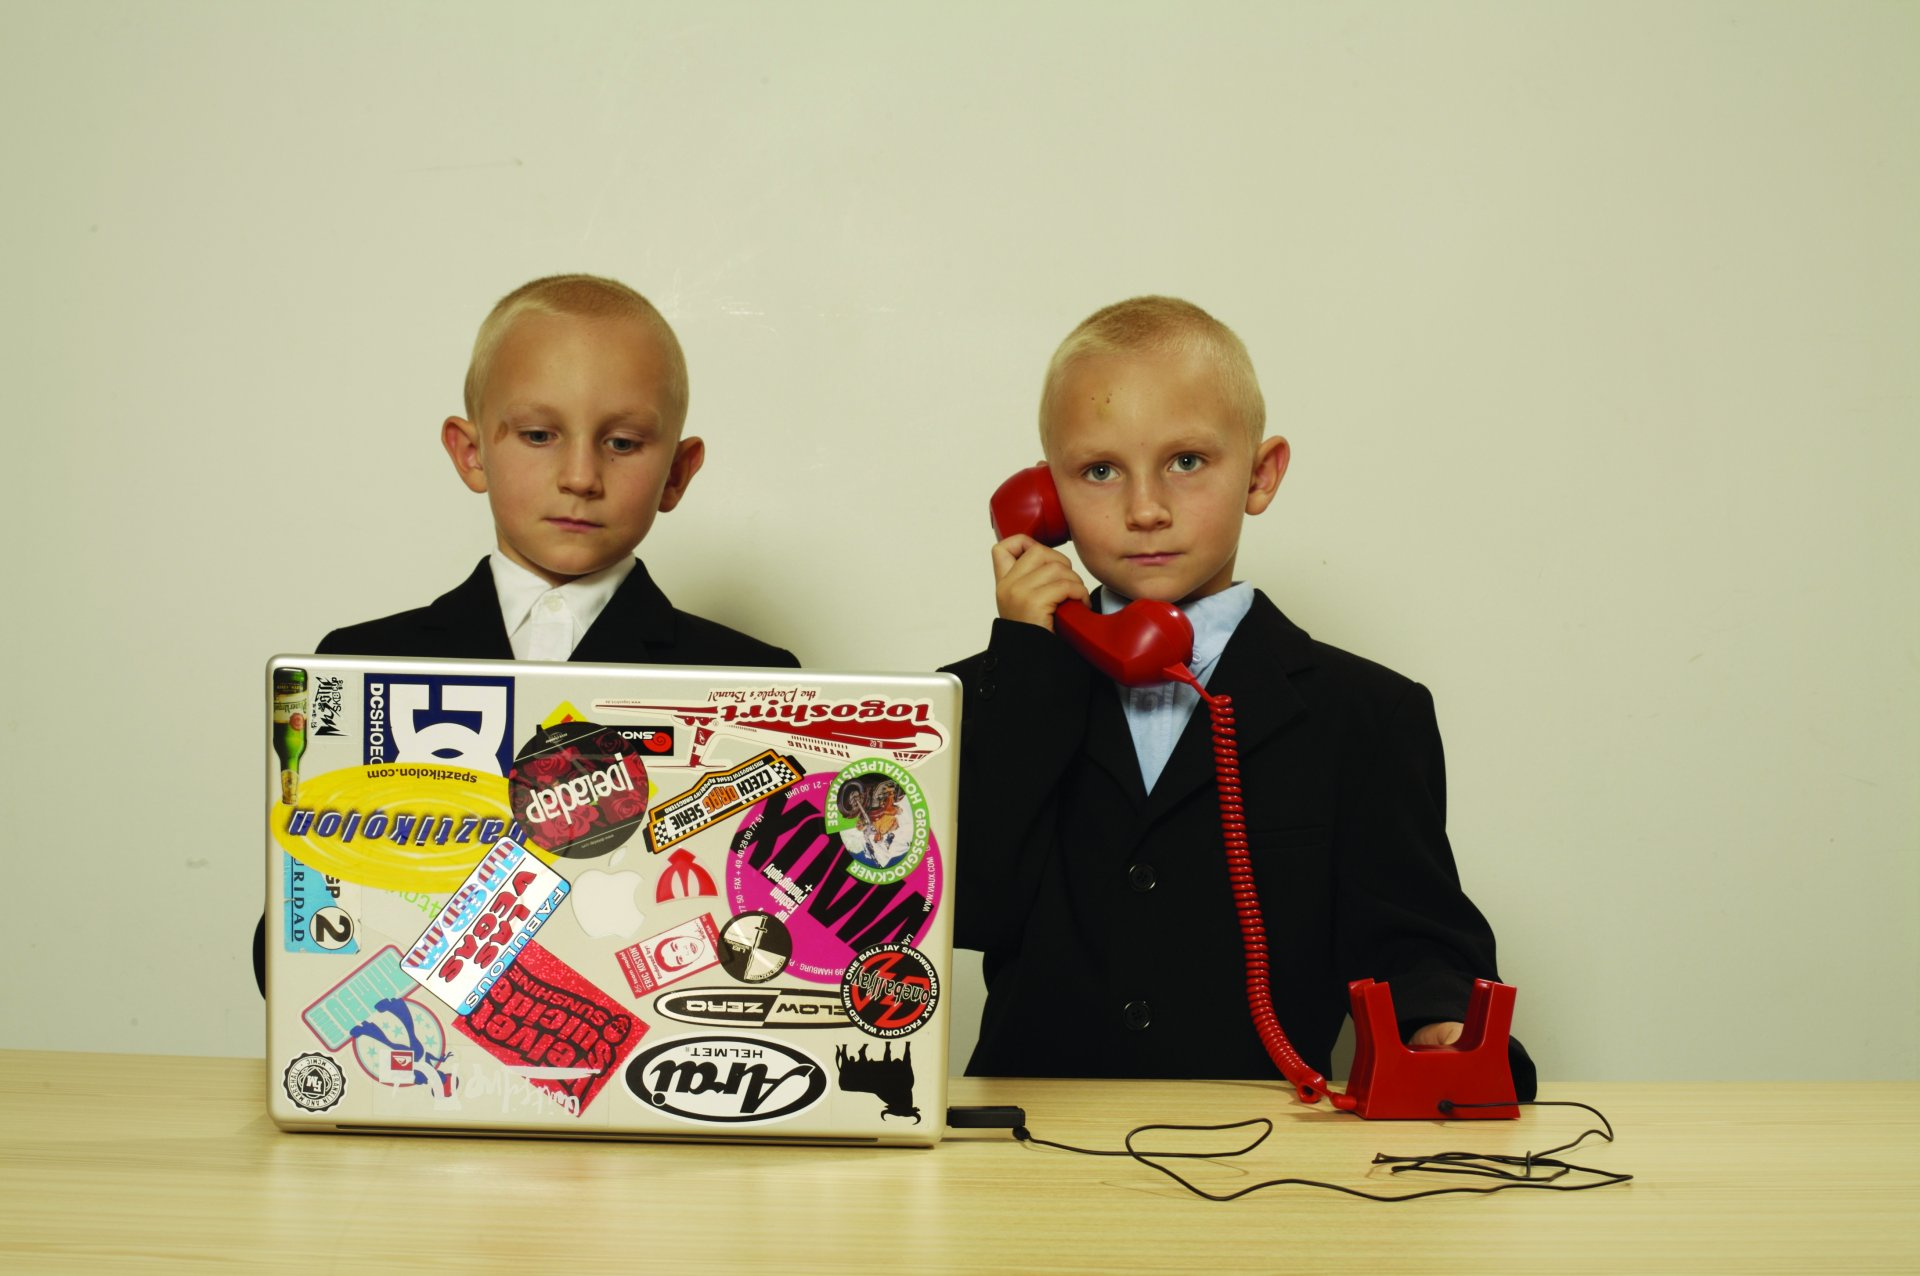 twins-p-red-voip Hulger Phones Hulger